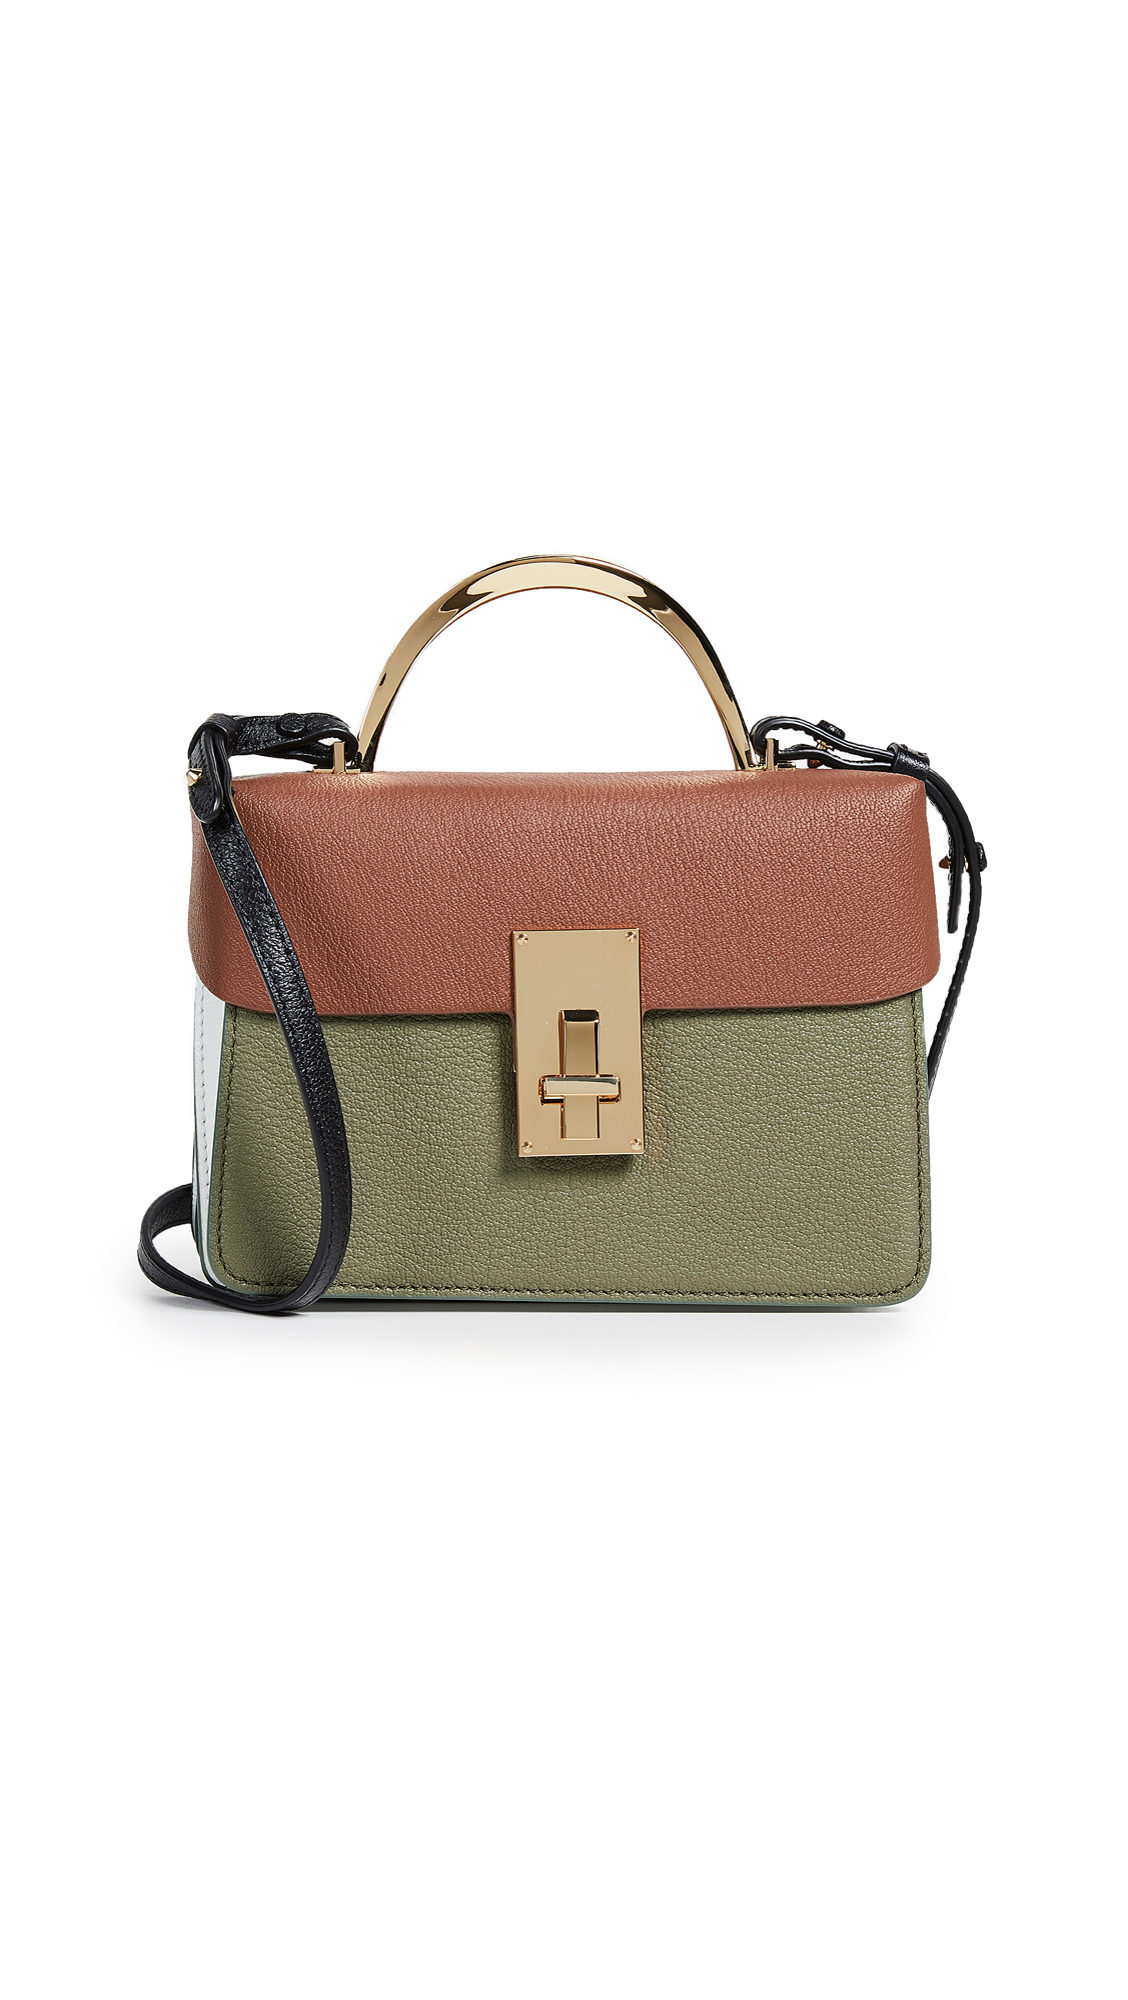 THE VOLON EXCLUSIVE DATA BASIC SATCHEL